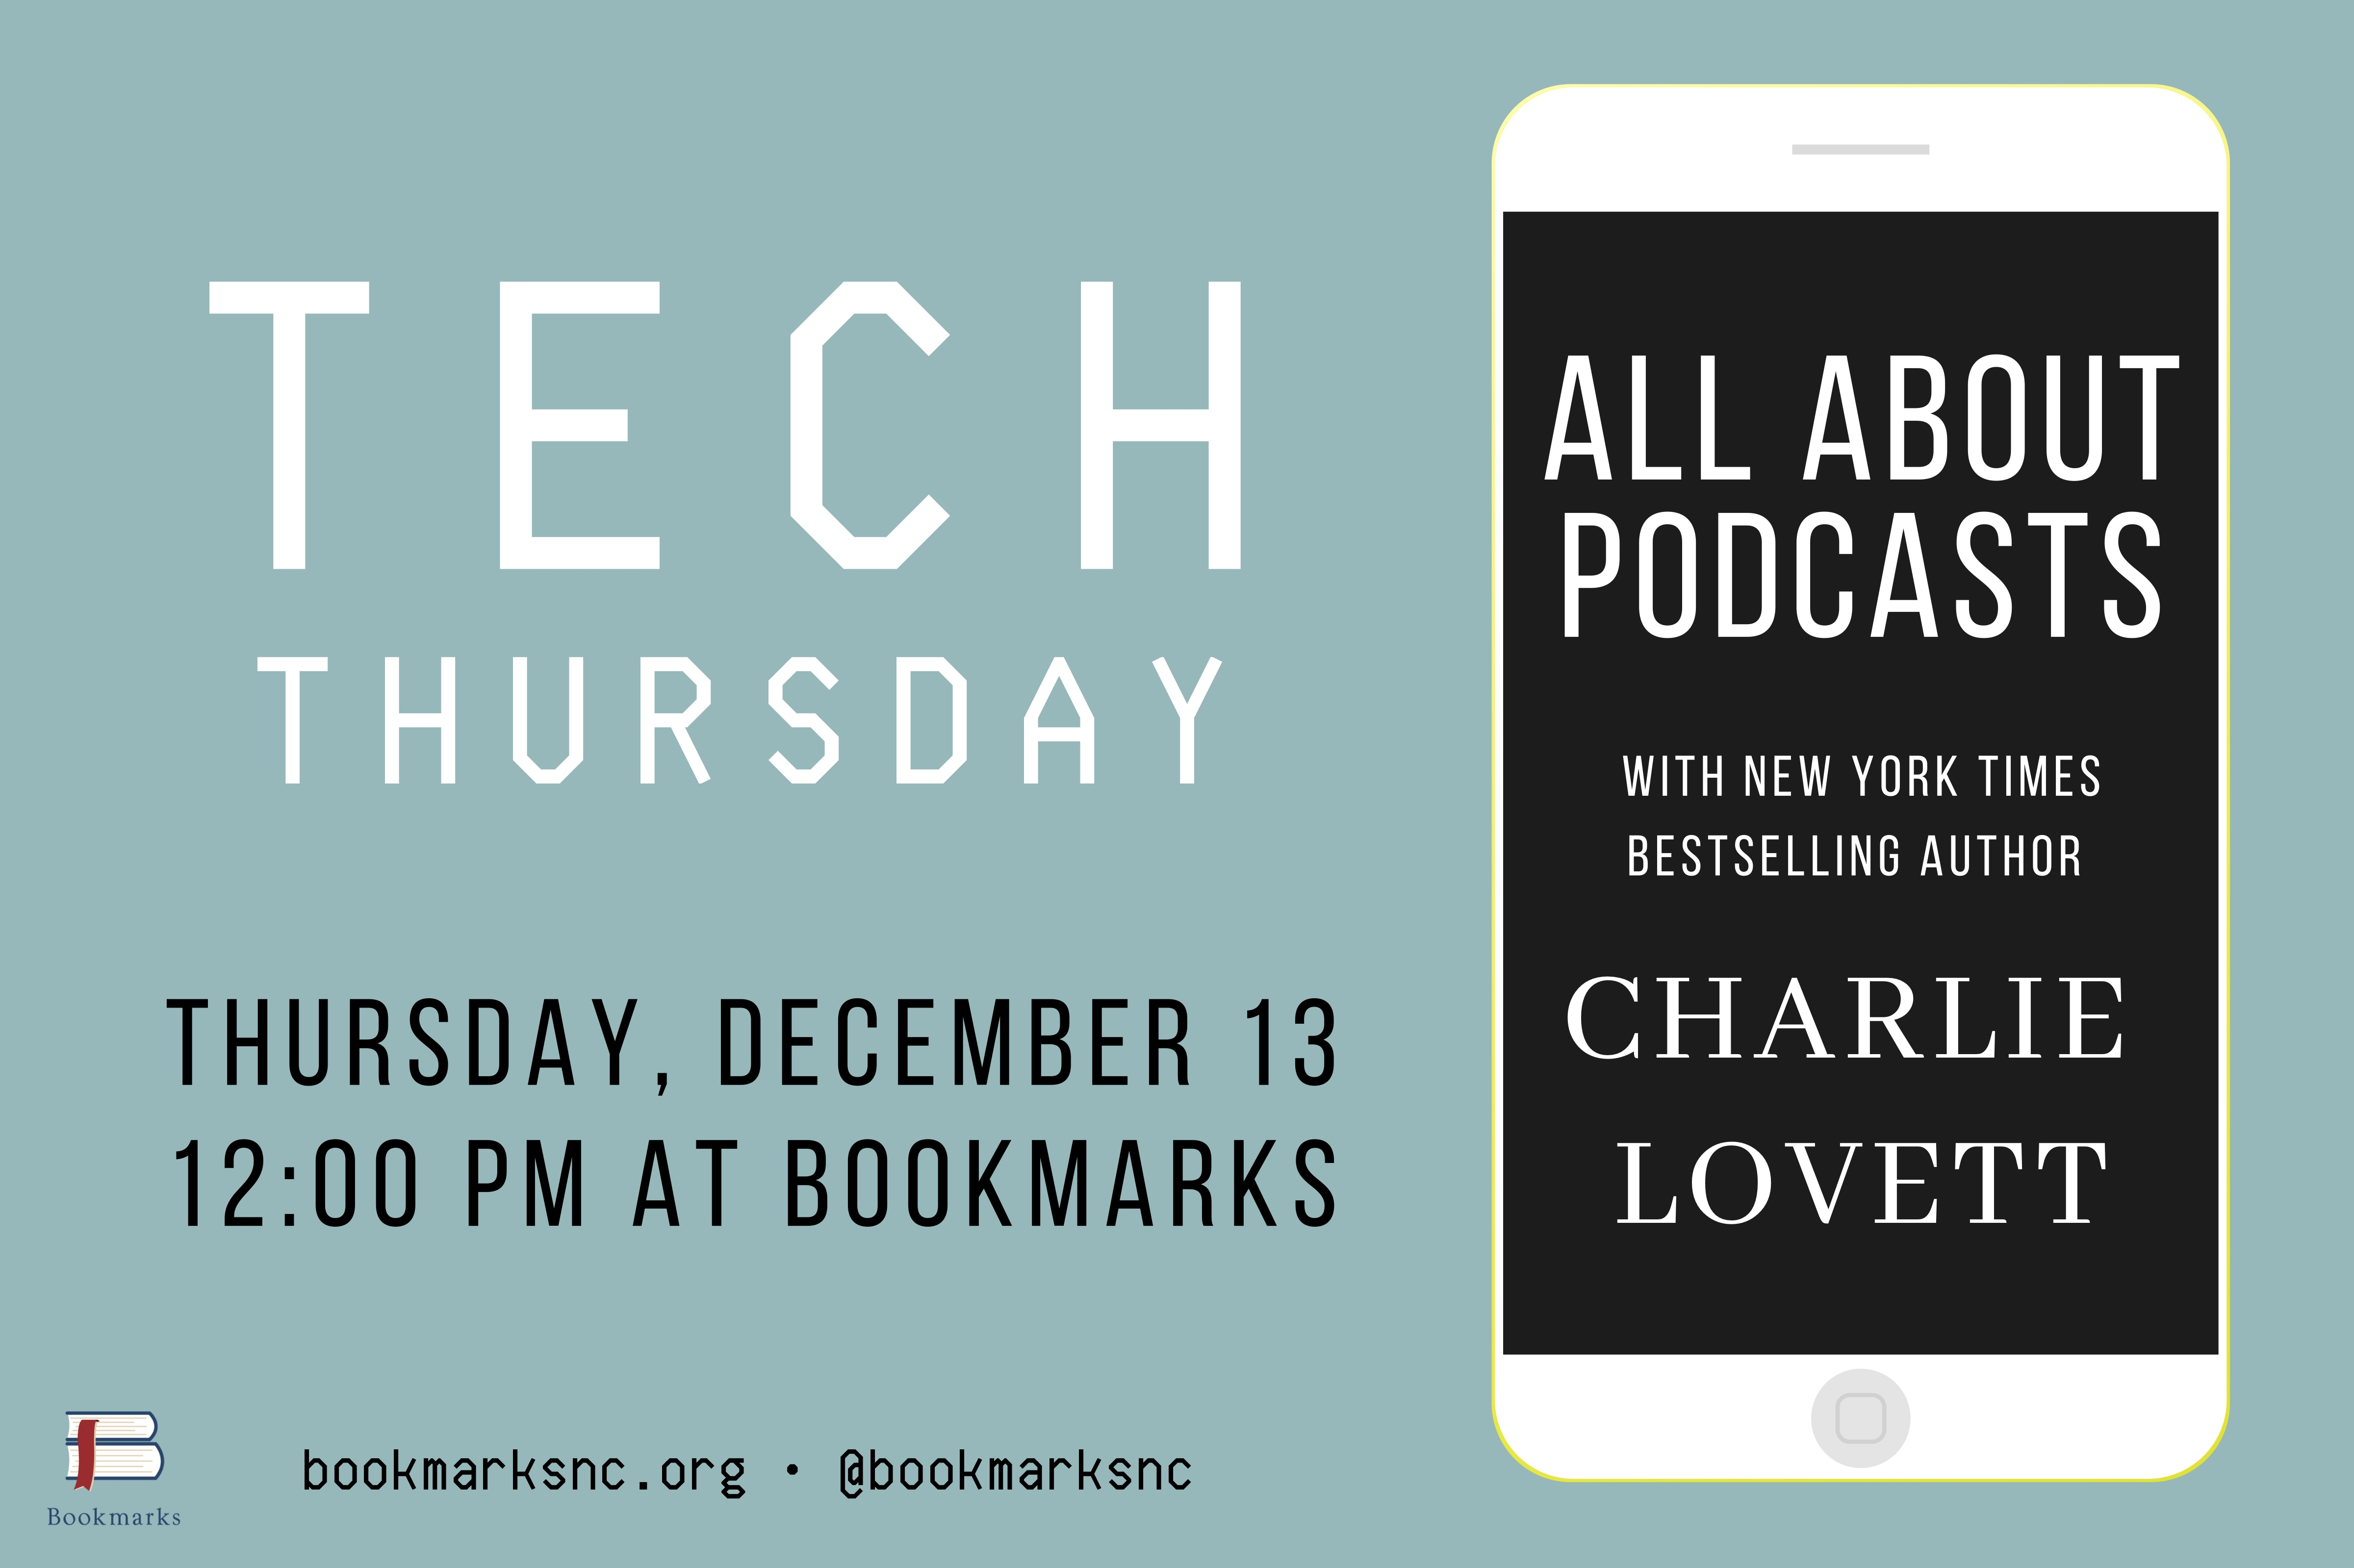 TECH THURSDAY: Podcasts with Author Charlie Lovett